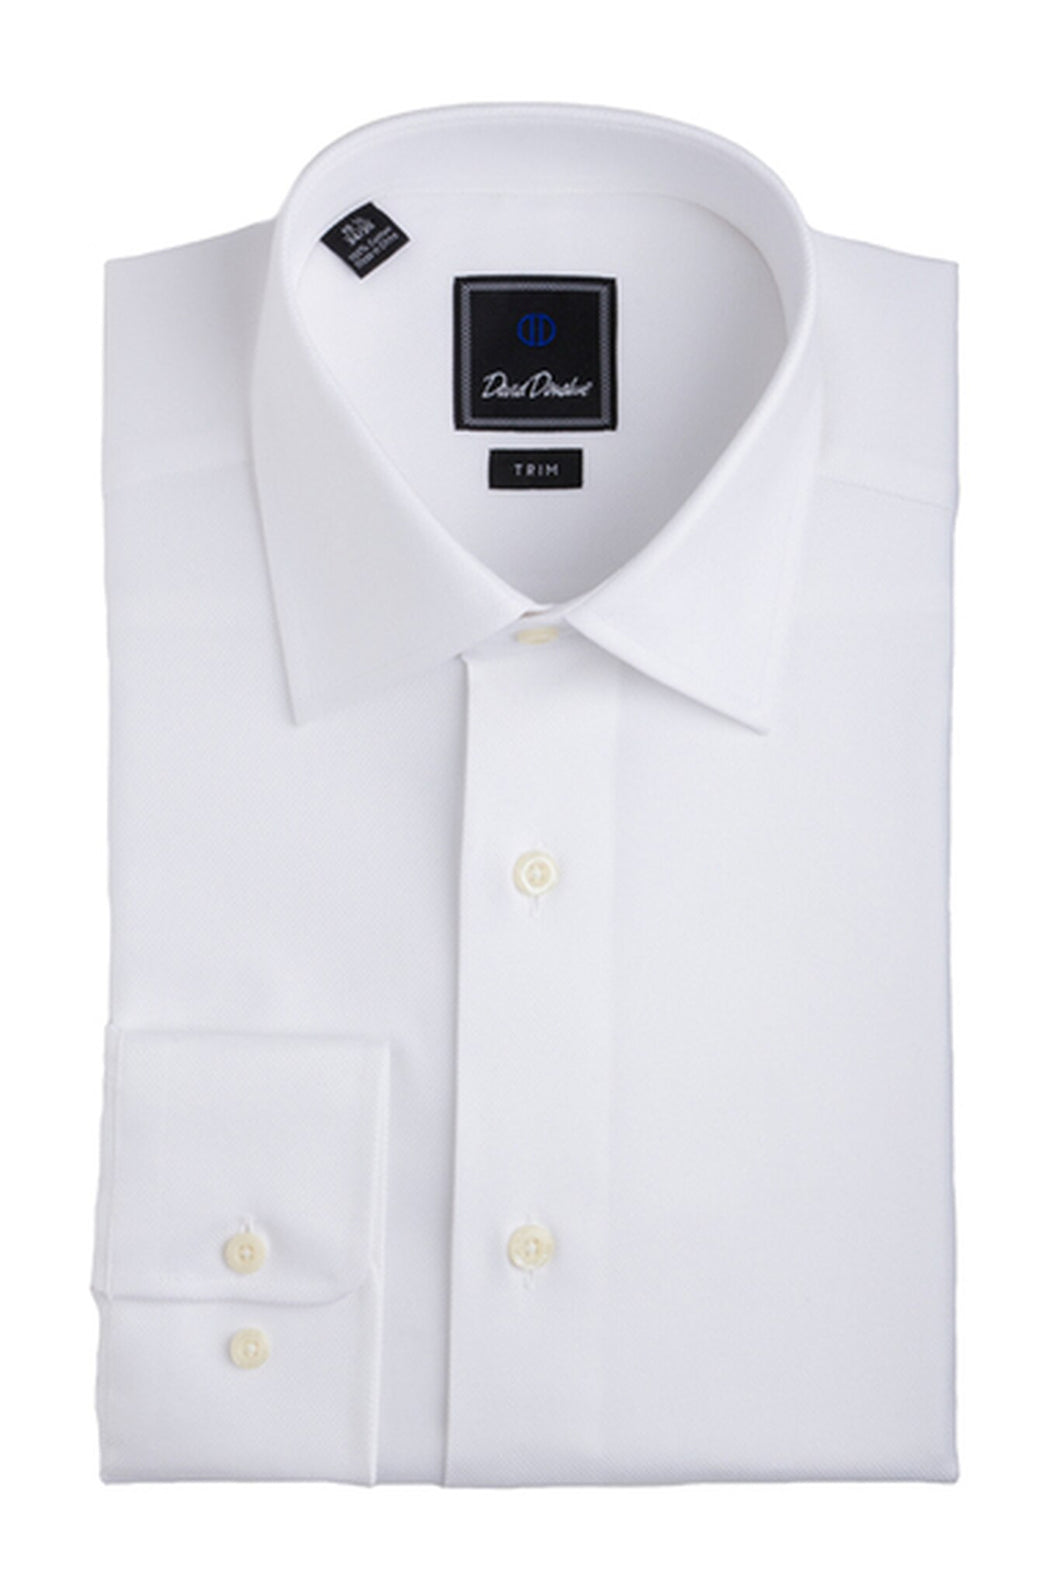 David Donahue Trim Fit Royal Oxford Dress Shirt in White